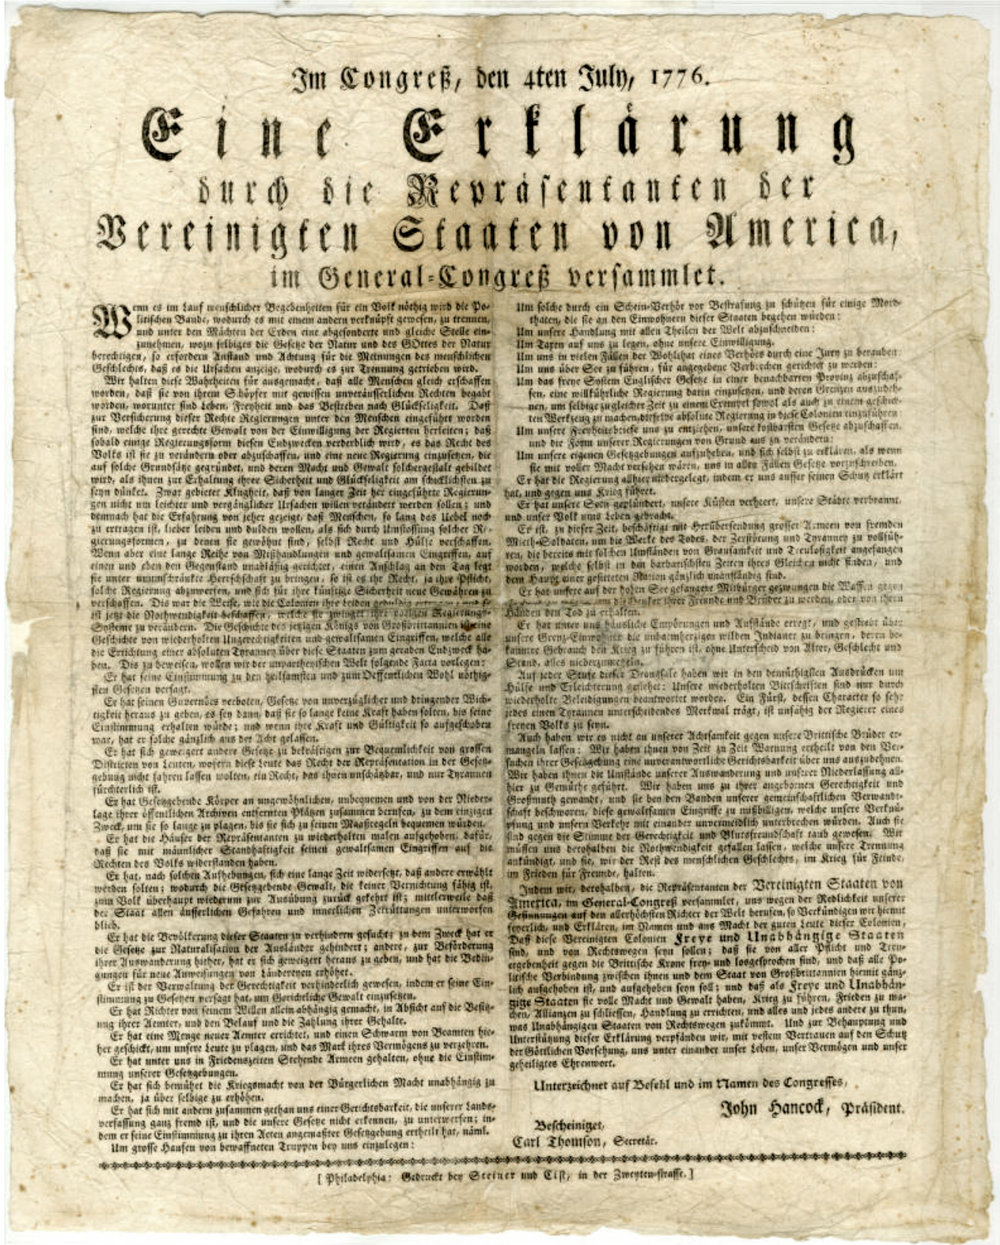 A German translation, Philadelphia, July 1776, also signed by the printers, Steiner & Cist. [Gettysburg College]